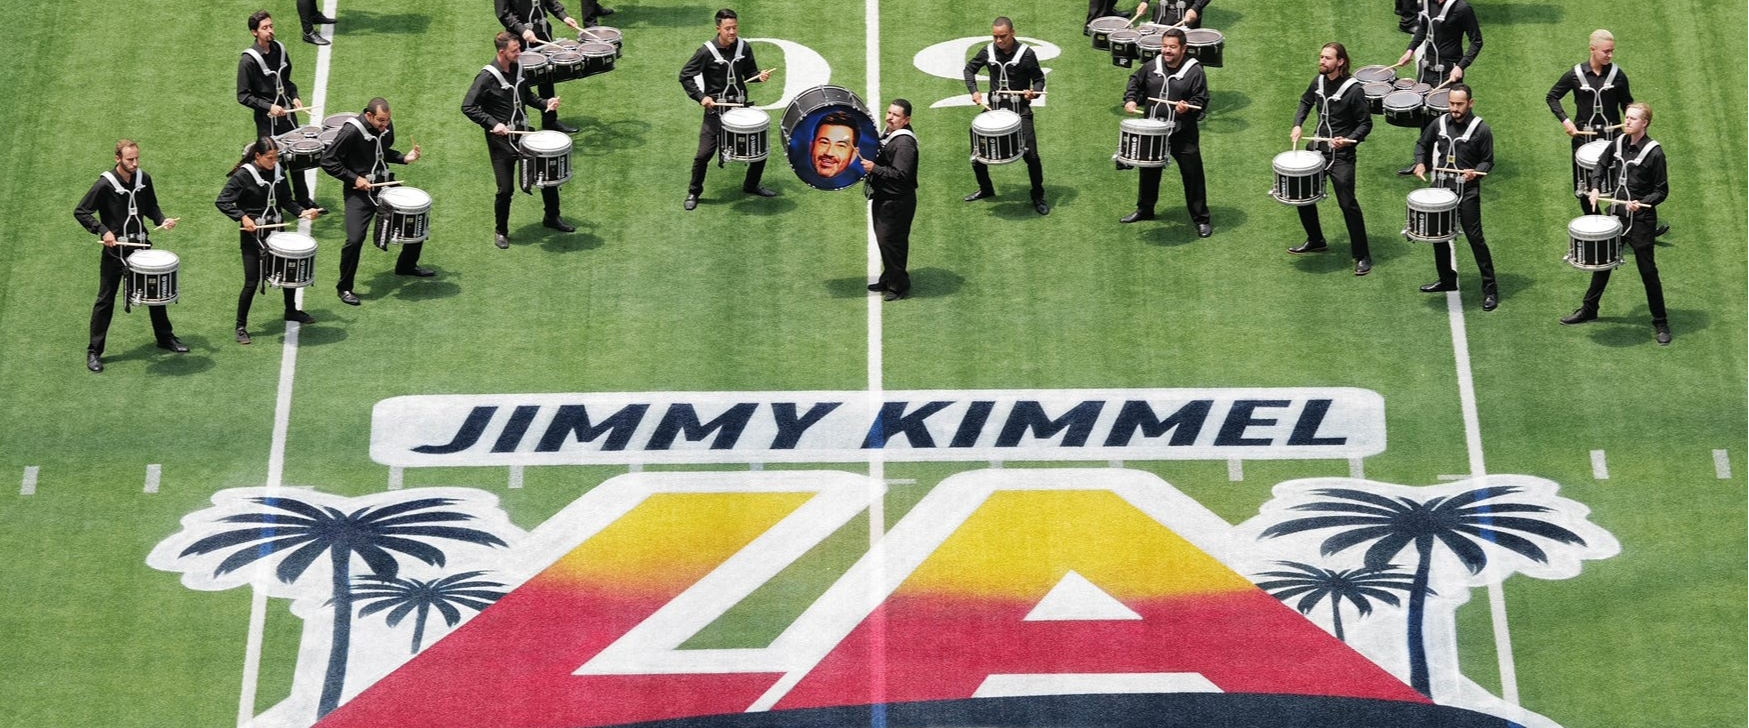 Jimmy Kimmel has his own bowl game now?